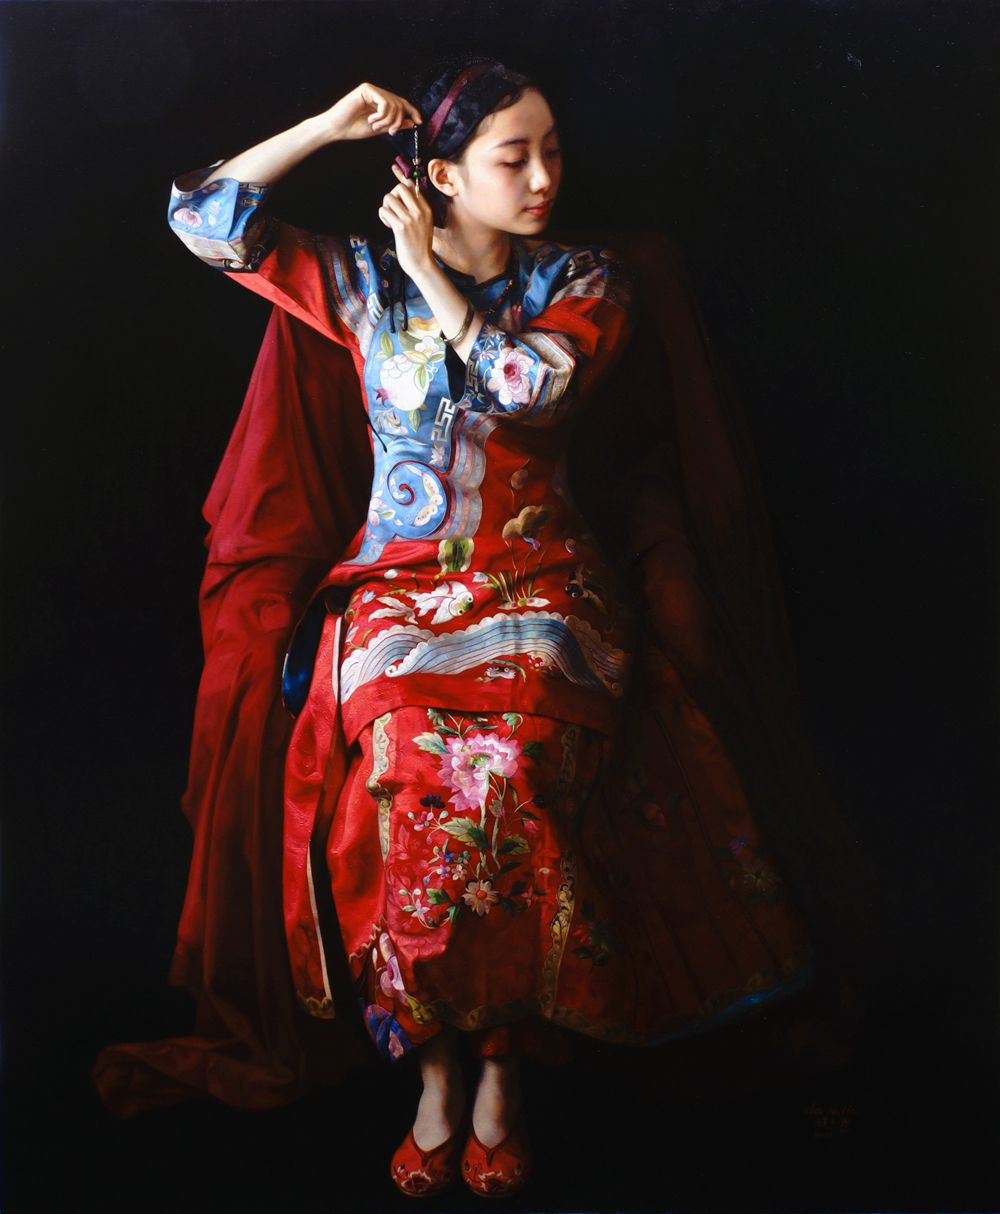 Spring Wind Over Last Nigh By China Artist Kailin Zhao Kailin Zhao Was Born In 1961 In Bengbu City Hyper Realistic Paintings Painting Words Chinese Artists